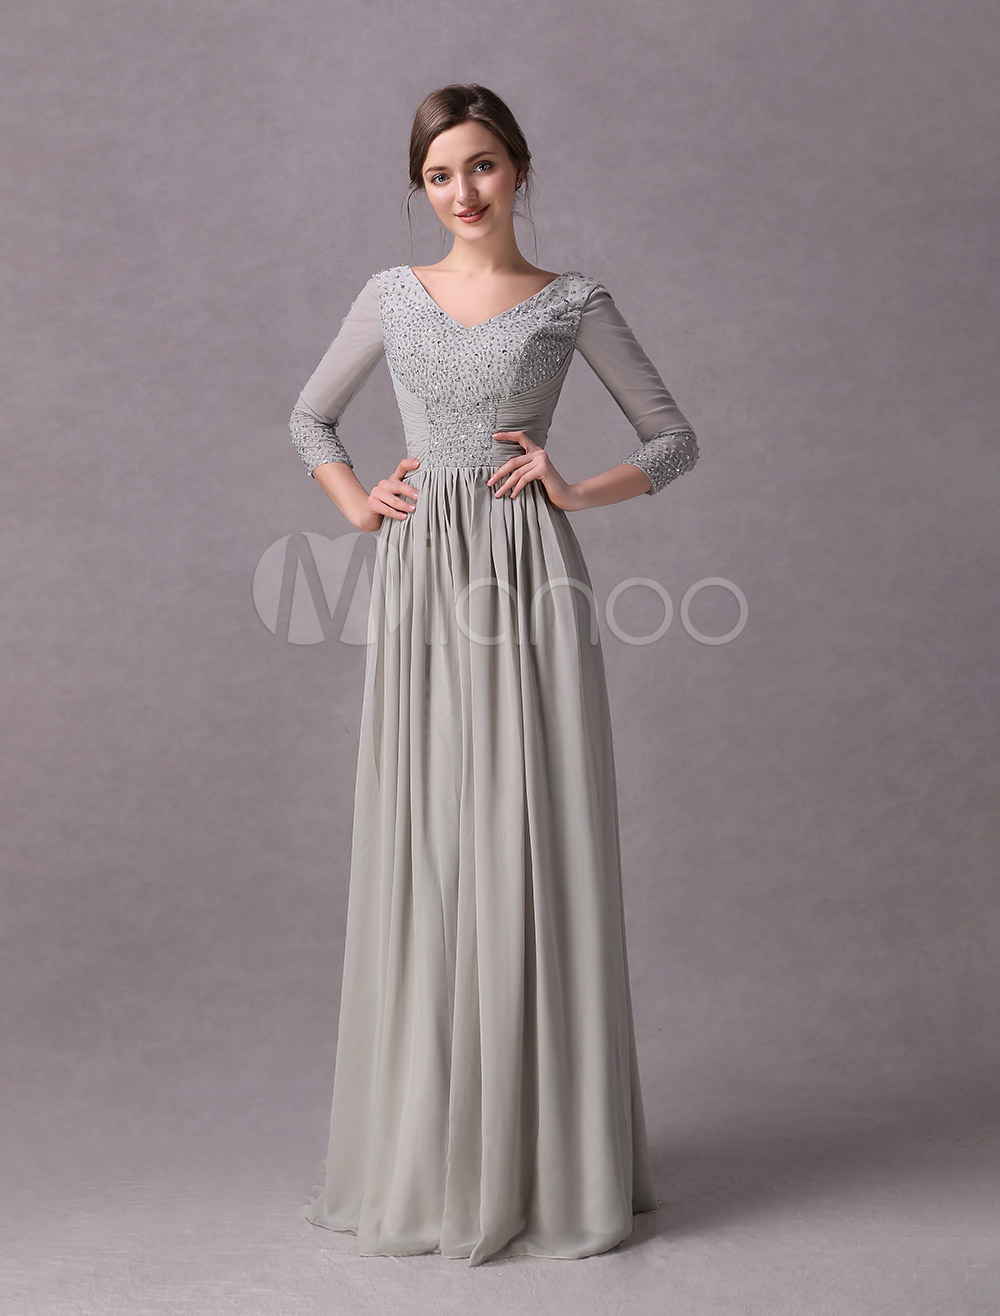 Buy Silver Sheath V-Neck Ruched Chiffon Dress For Mother of the Bride with 3/4 Length Sleeves for $149.99 in Milanoo store